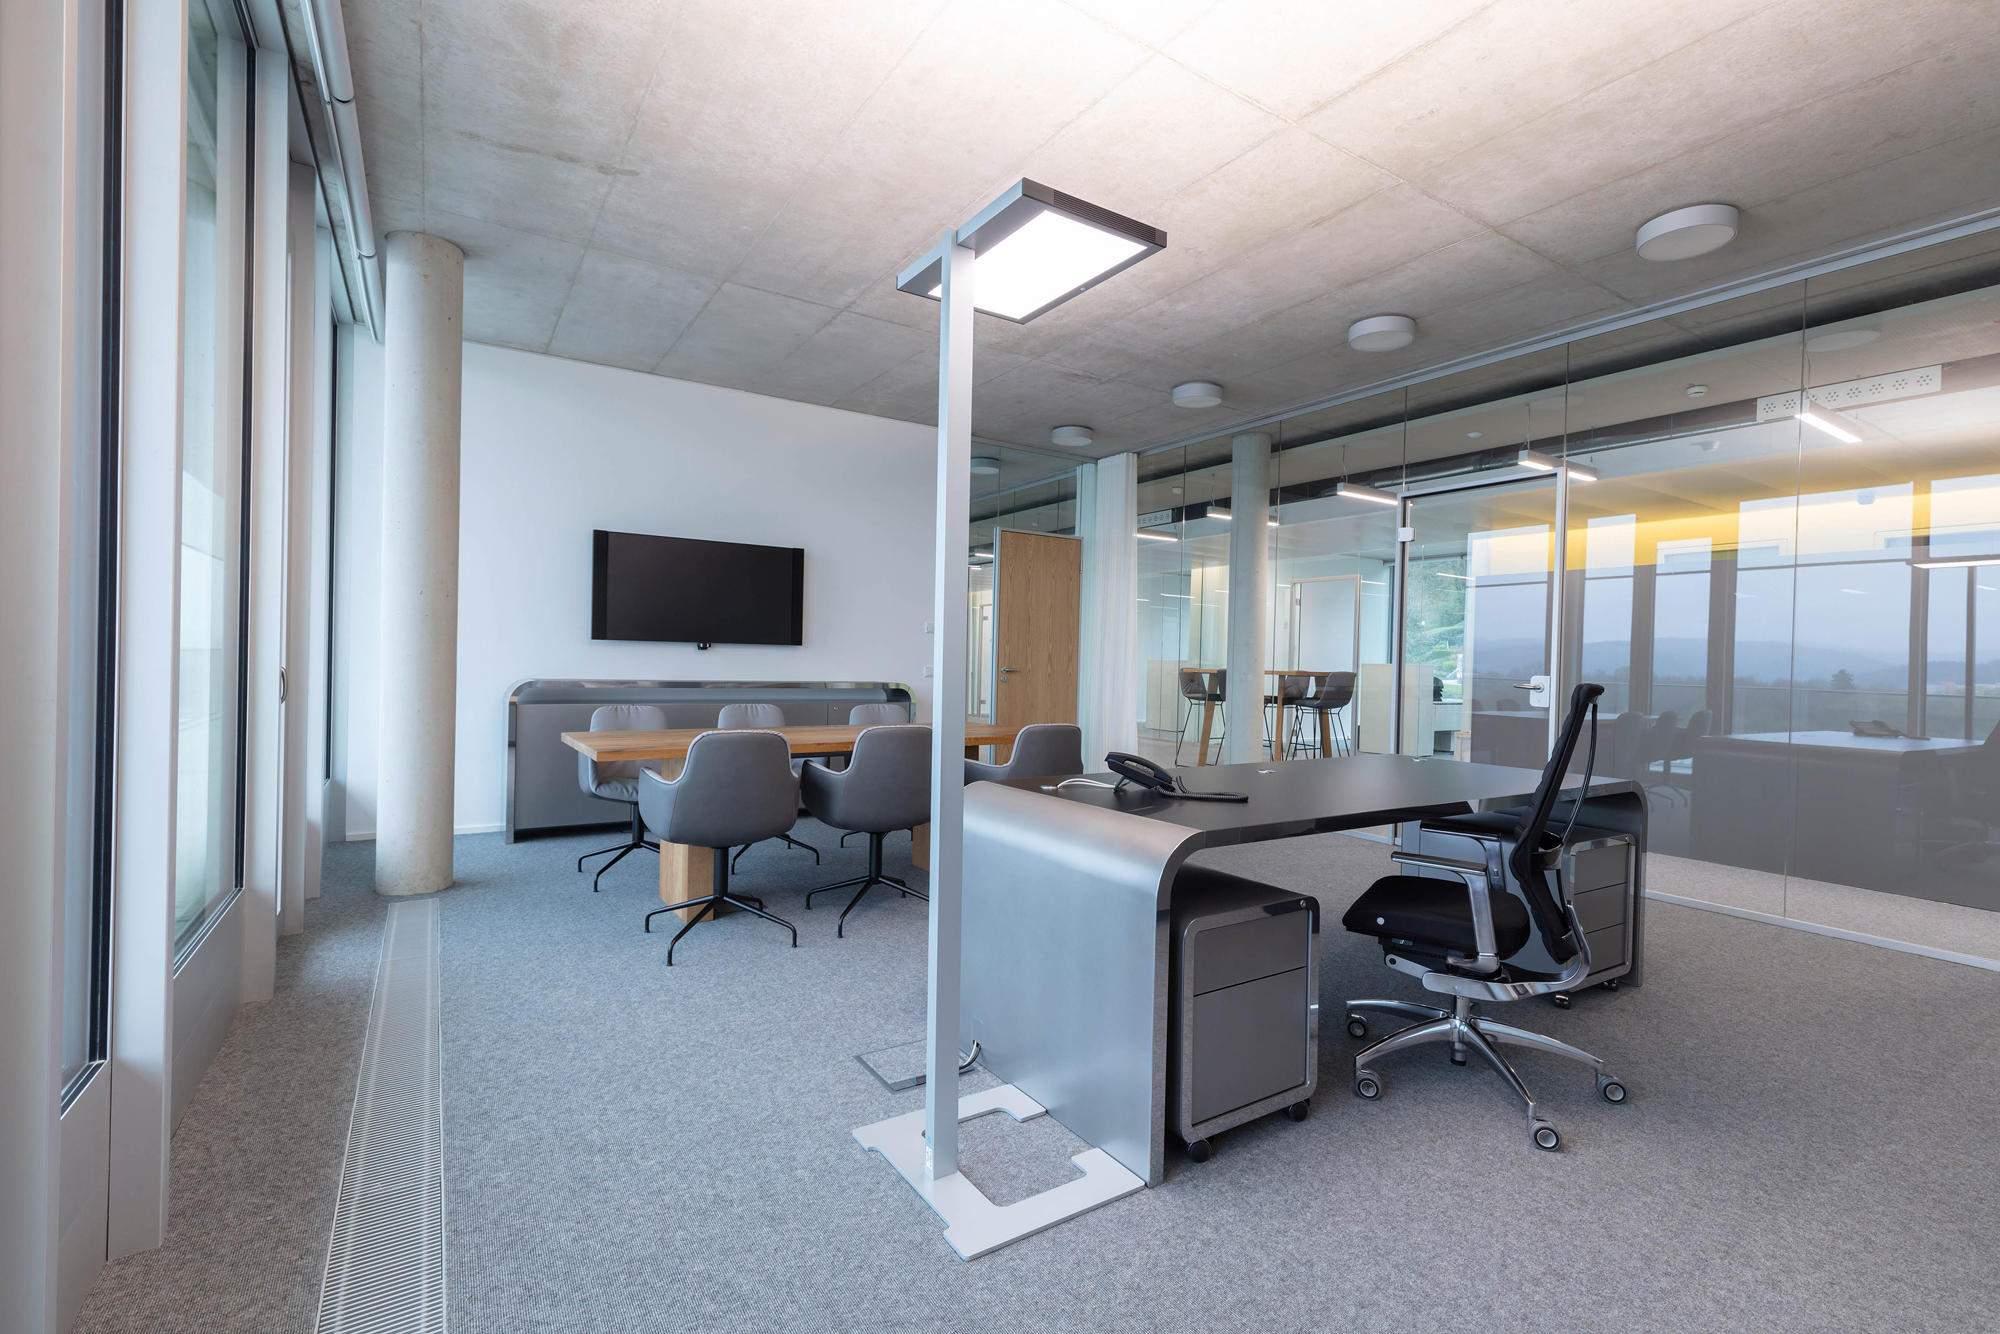 Employee Focused Lighting Solution At Medice By Luctra